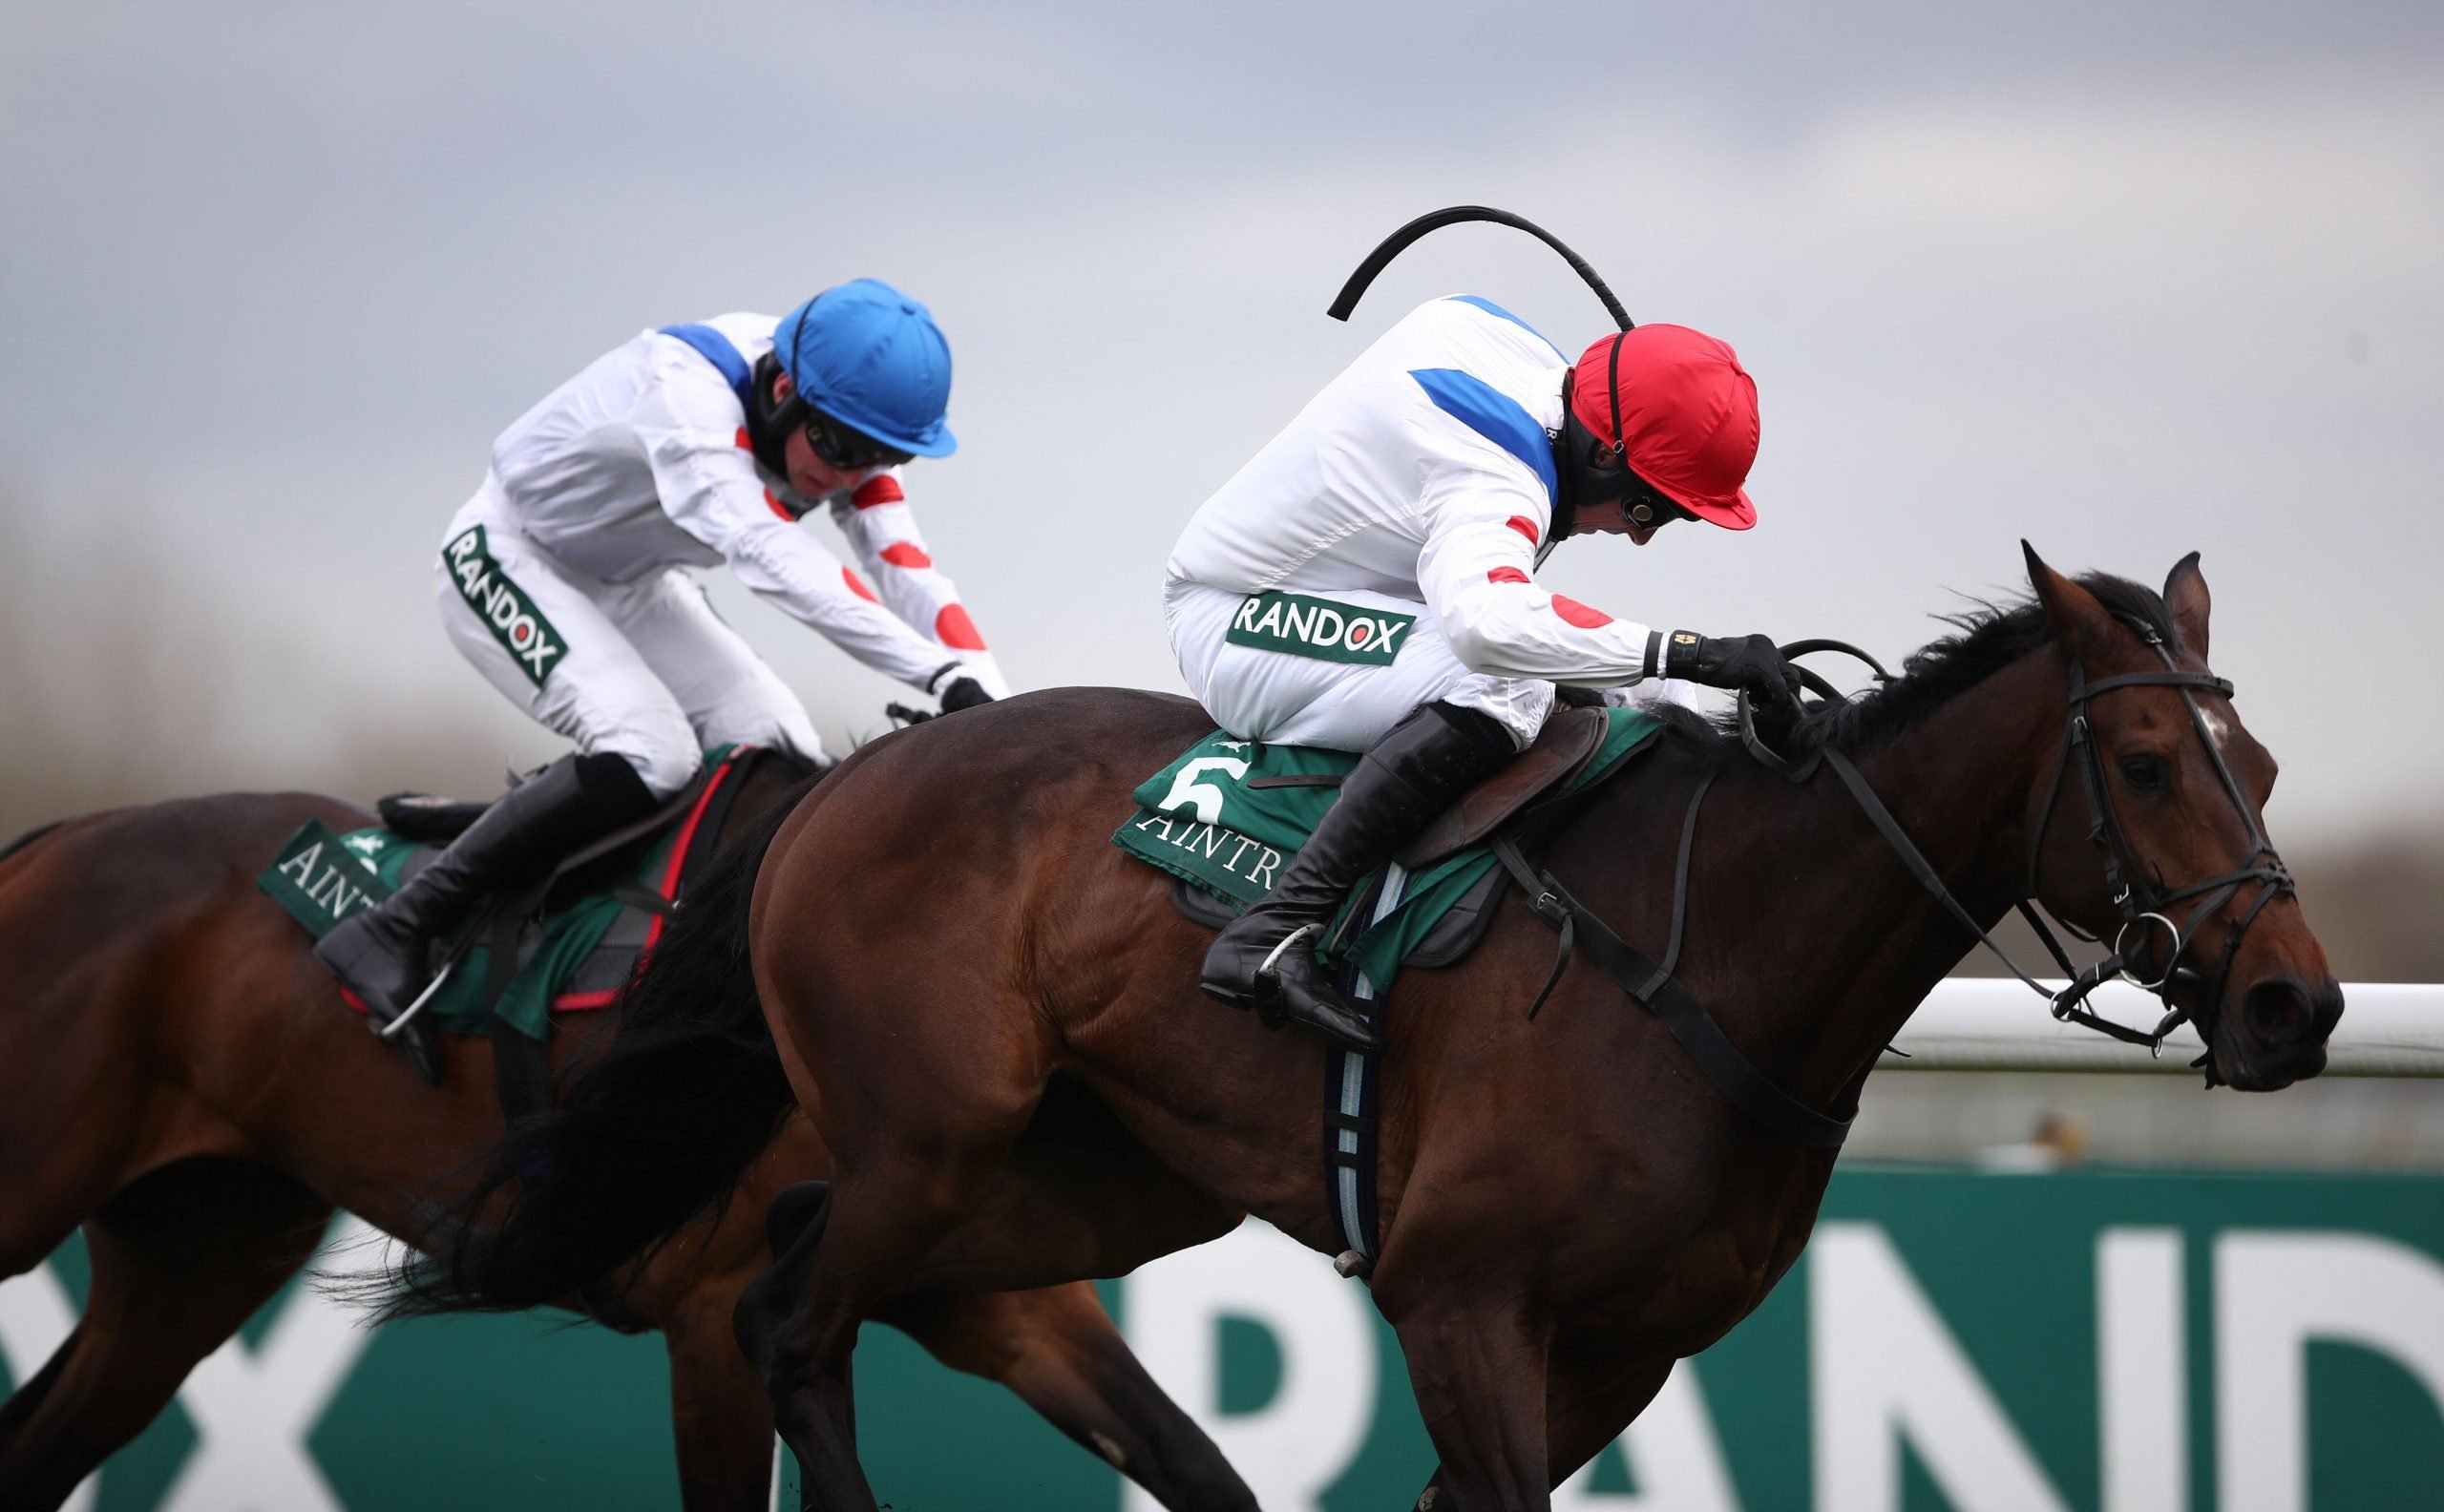 Protektorat ridden by Harry Skelton (right) coming home to win the SSS Super Alloys Manifesto Novices' Chase during the Liverpool NHS Day of the 2021 Randox Health Grand National Festival at Aintree Racecourse, Liverpool. Picture date: Thursday April 8, 2